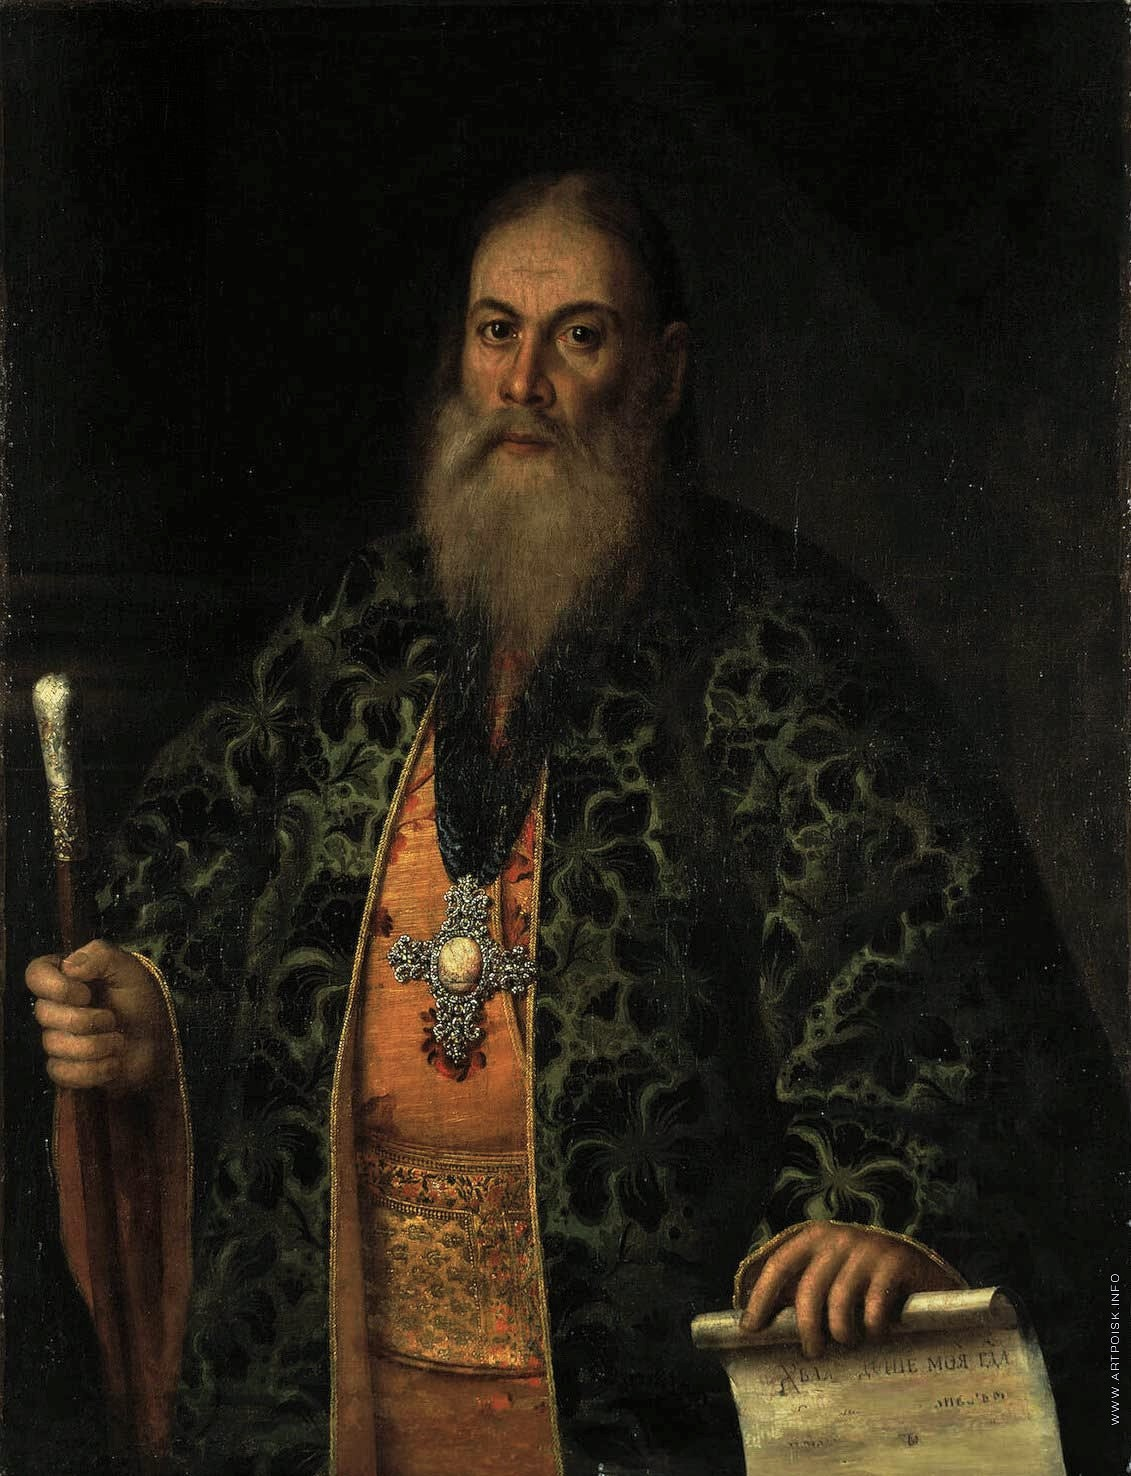 https://i2.wp.com/upload.wikimedia.org/wikipedia/commons/5/51/Portrait_of_Father_Fyodor_Dubyansky.jpg